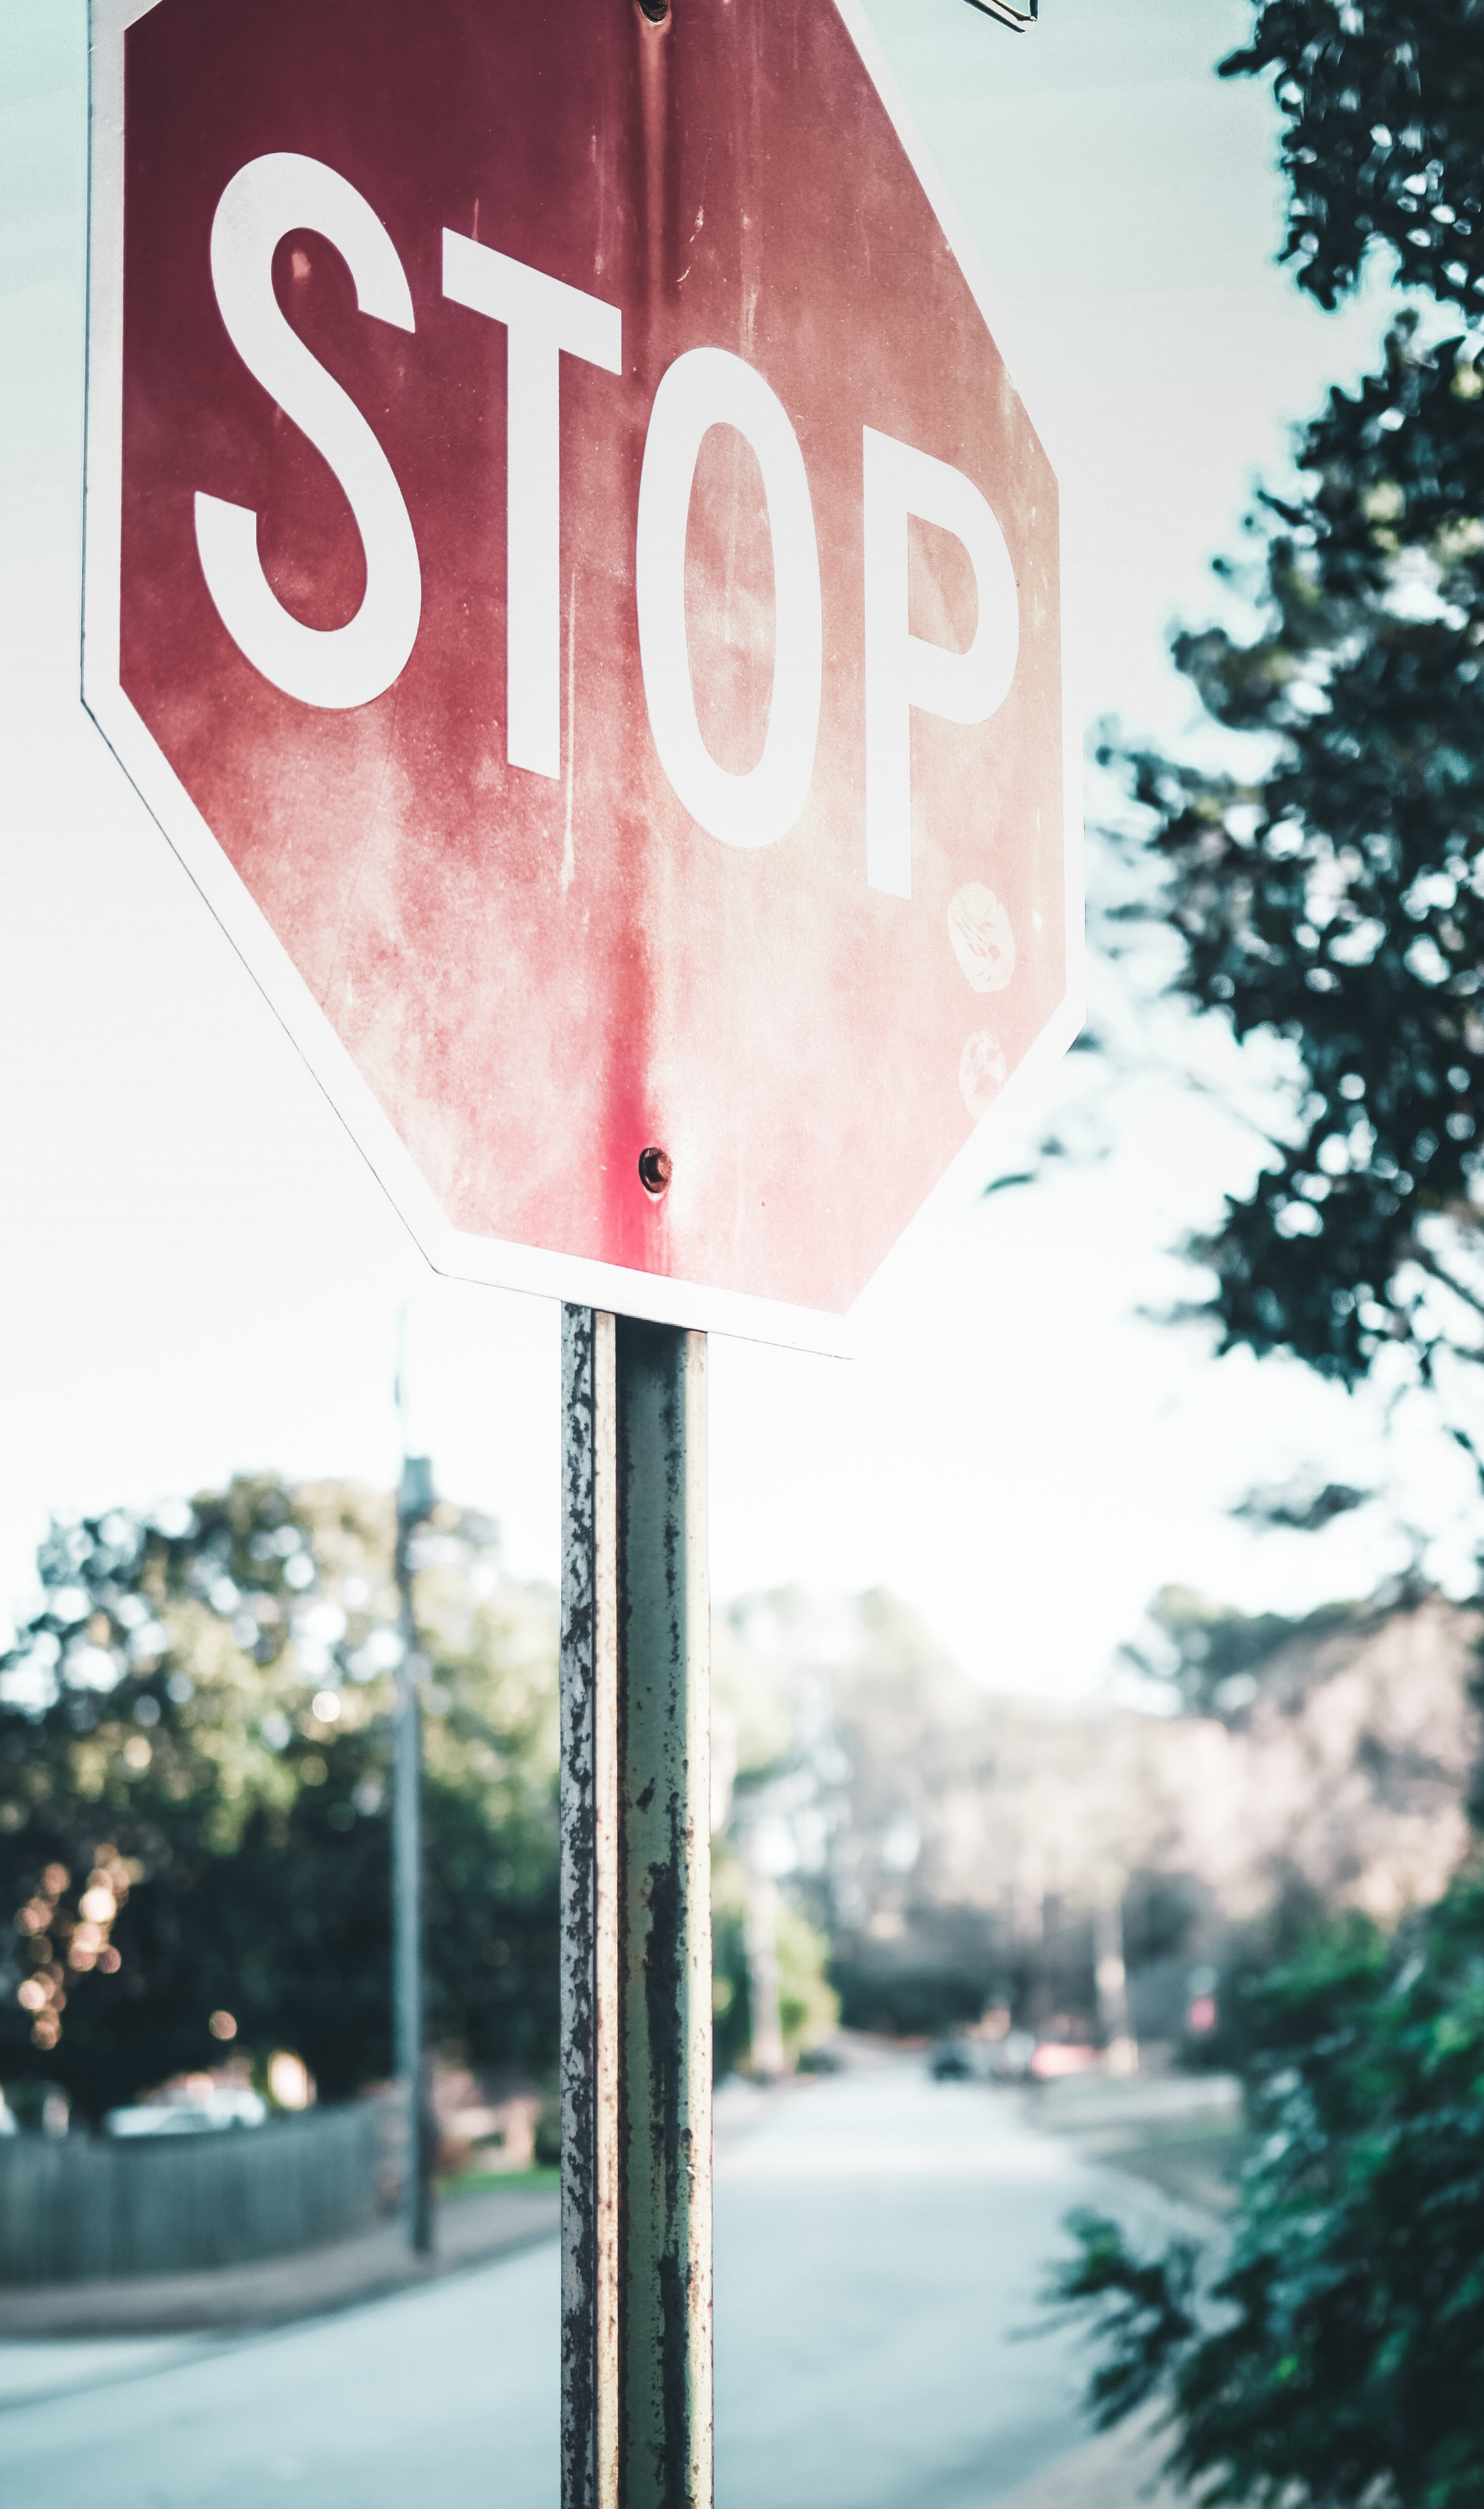 Stop sign to indicate stopping weight gain